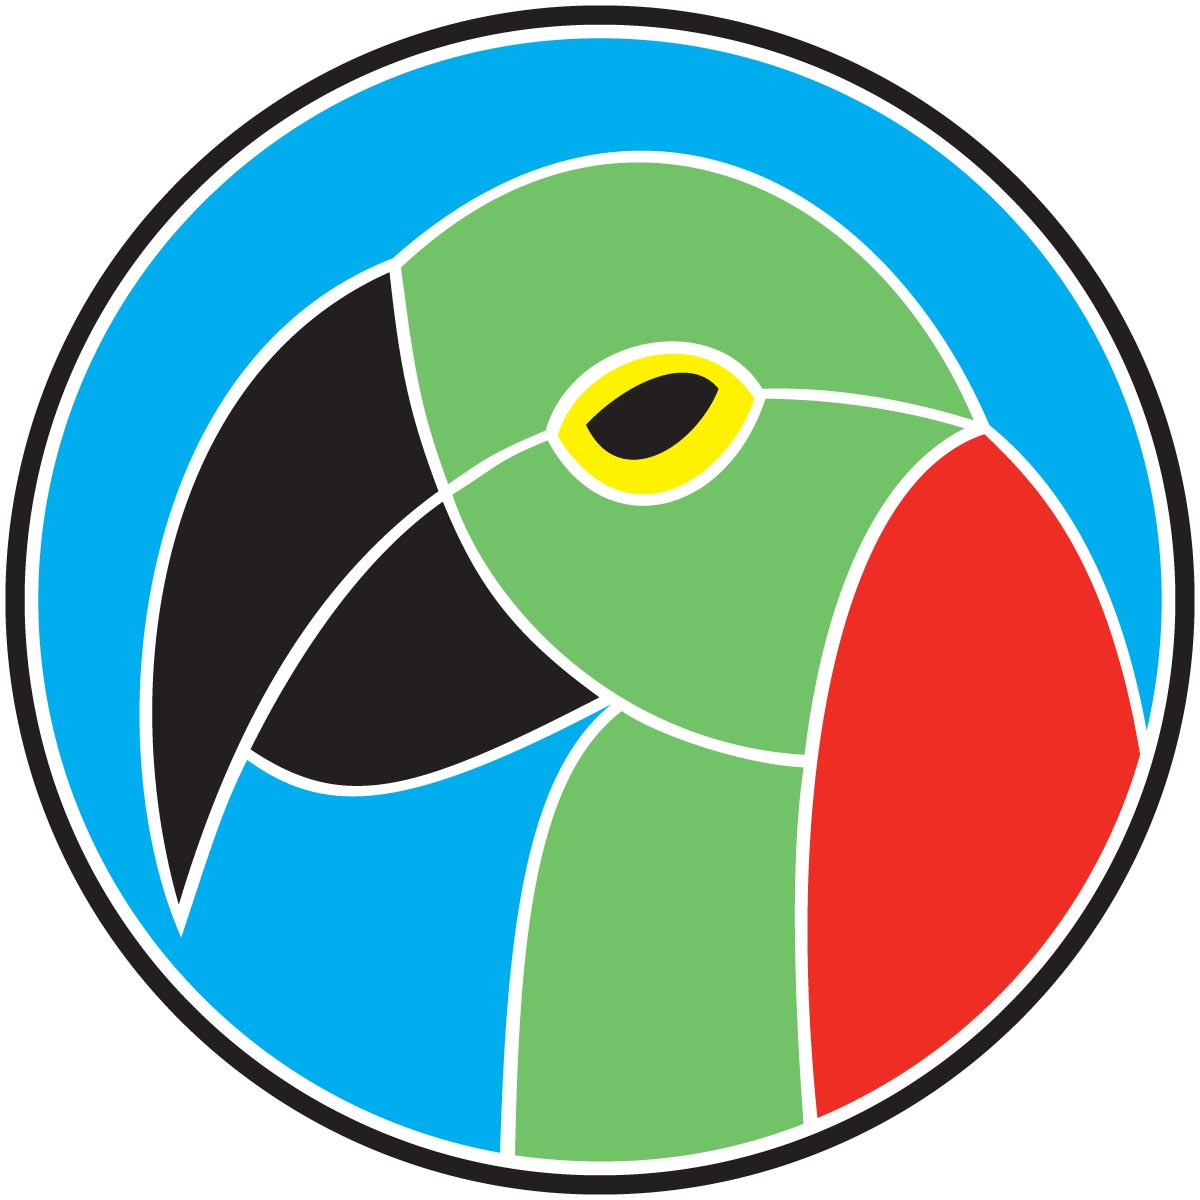 Amd clipart parrot Logo Carallon Parrot Manager Interactive